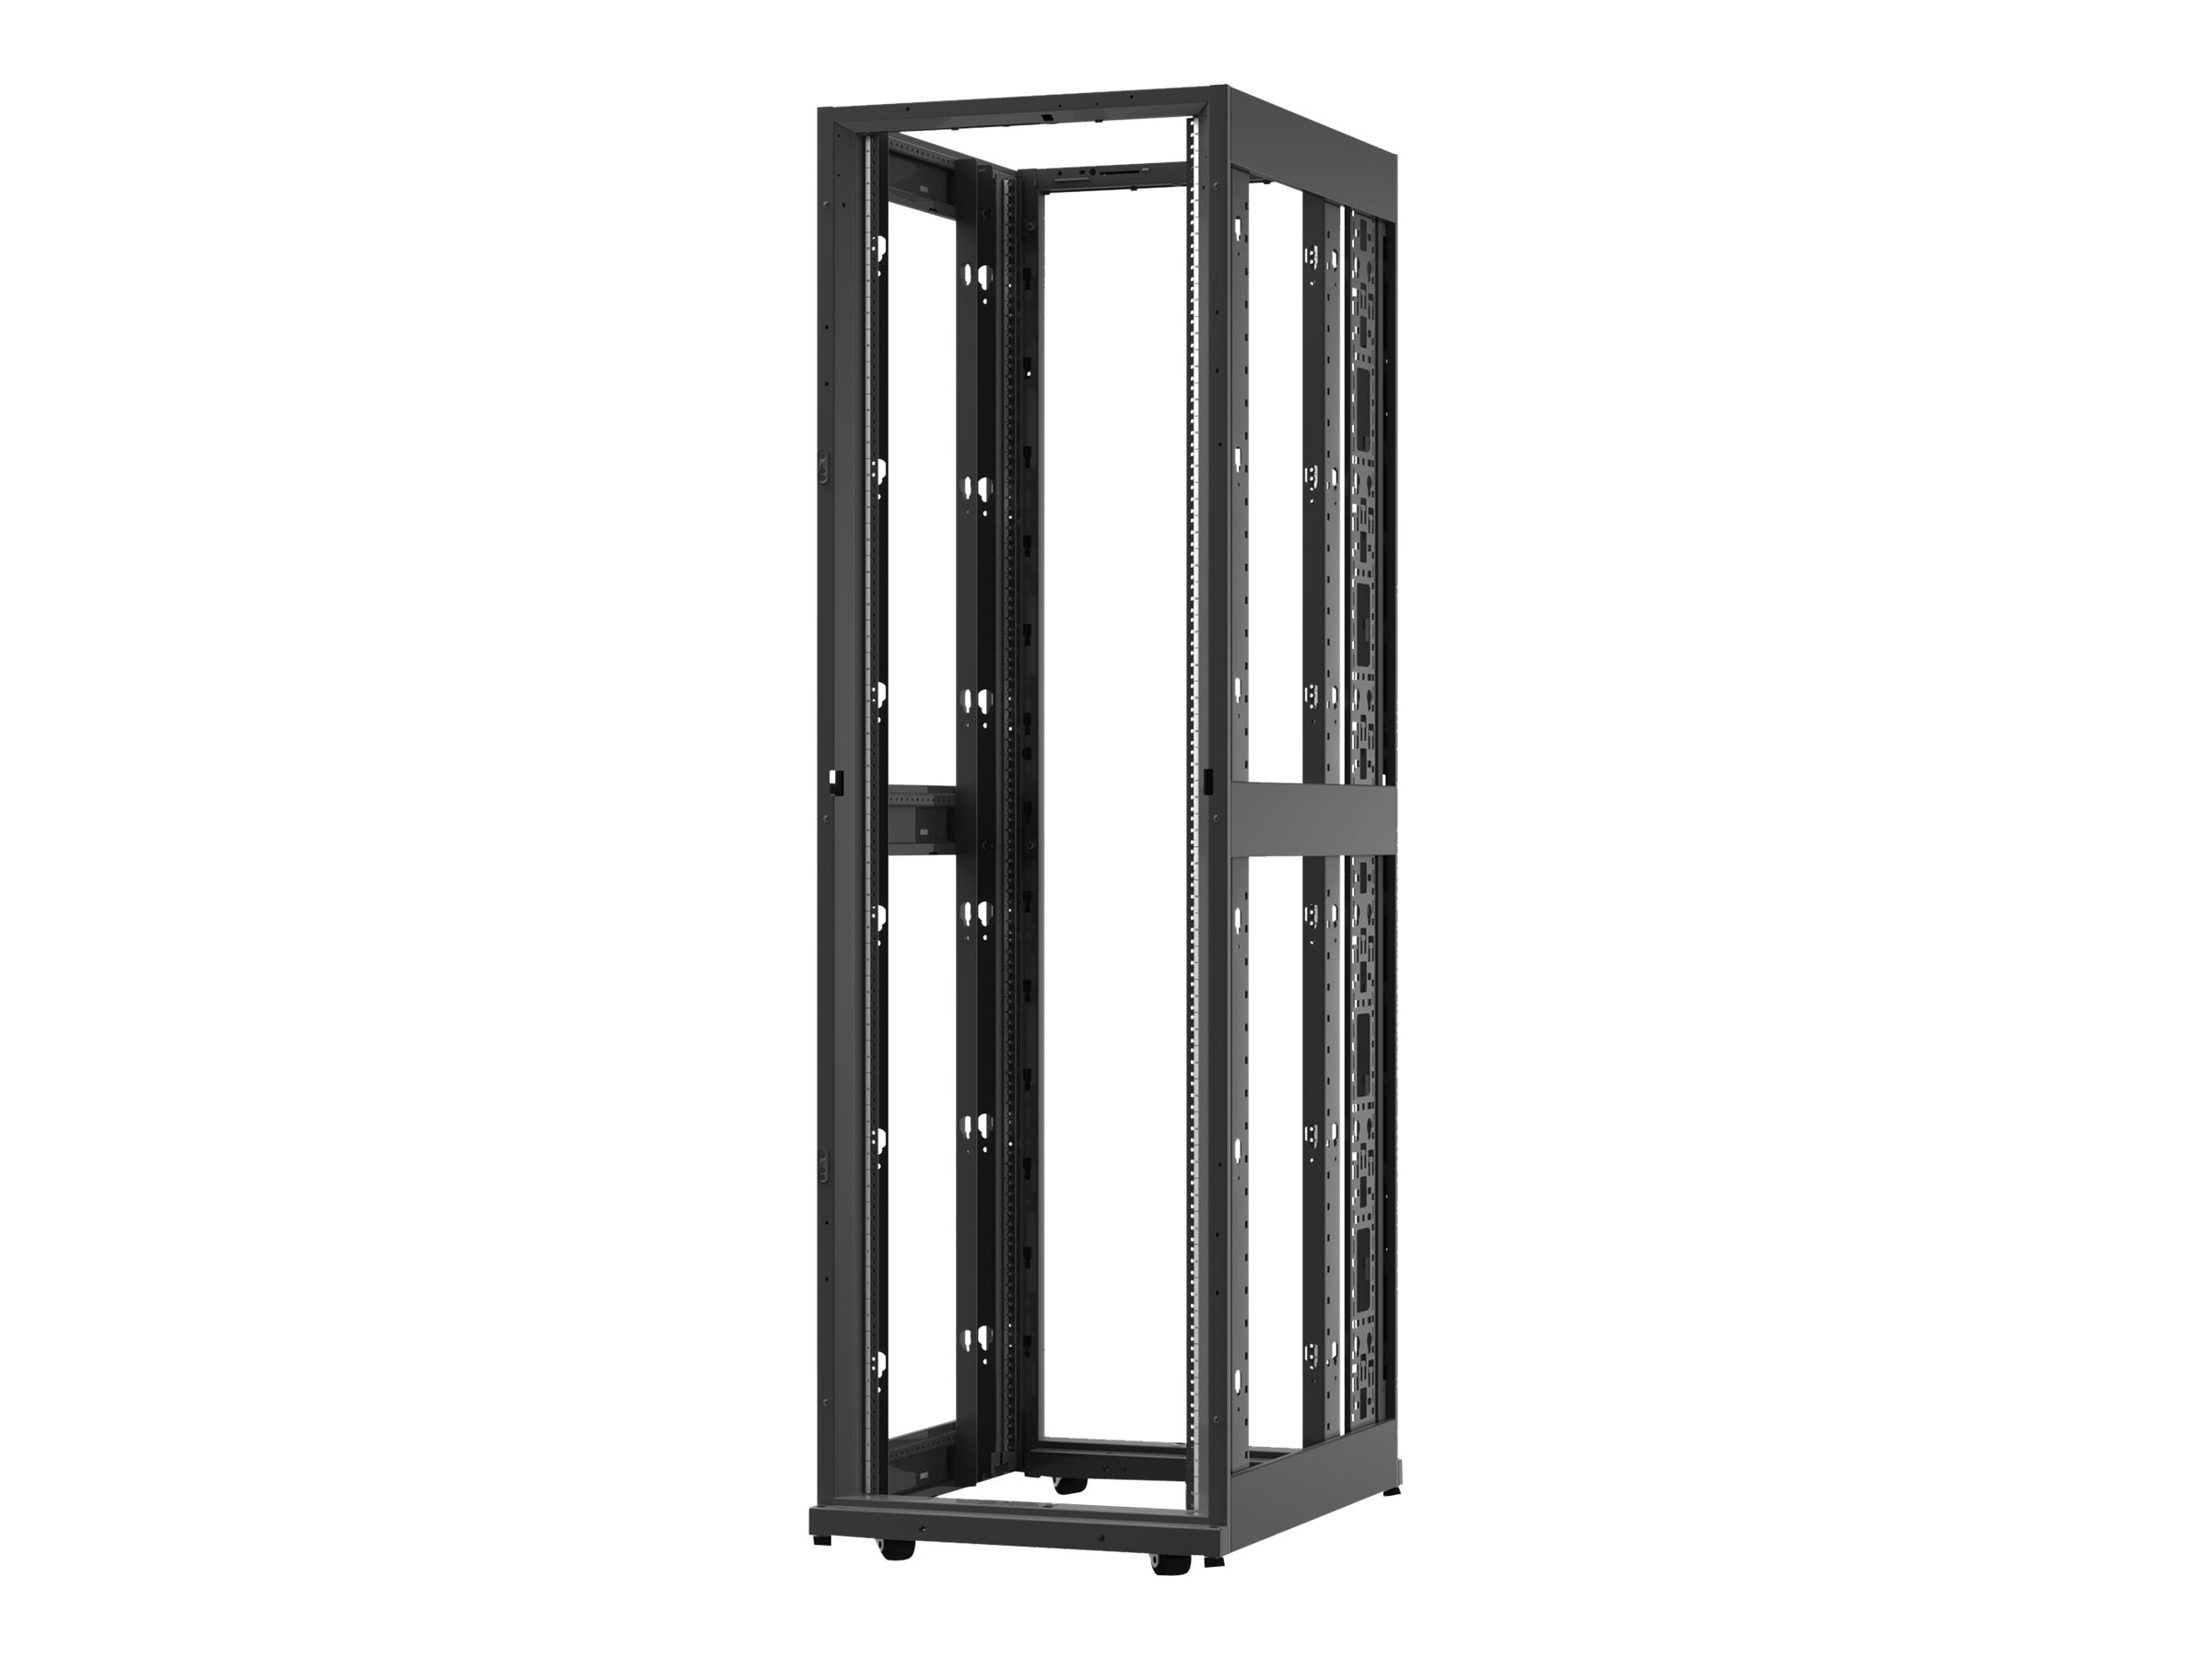 APC NetShelter AV 42U 600mm W x 825mm D Enclosure, 10-32 Threaded Rails, No Sides Roof Doors, Black, AR3812